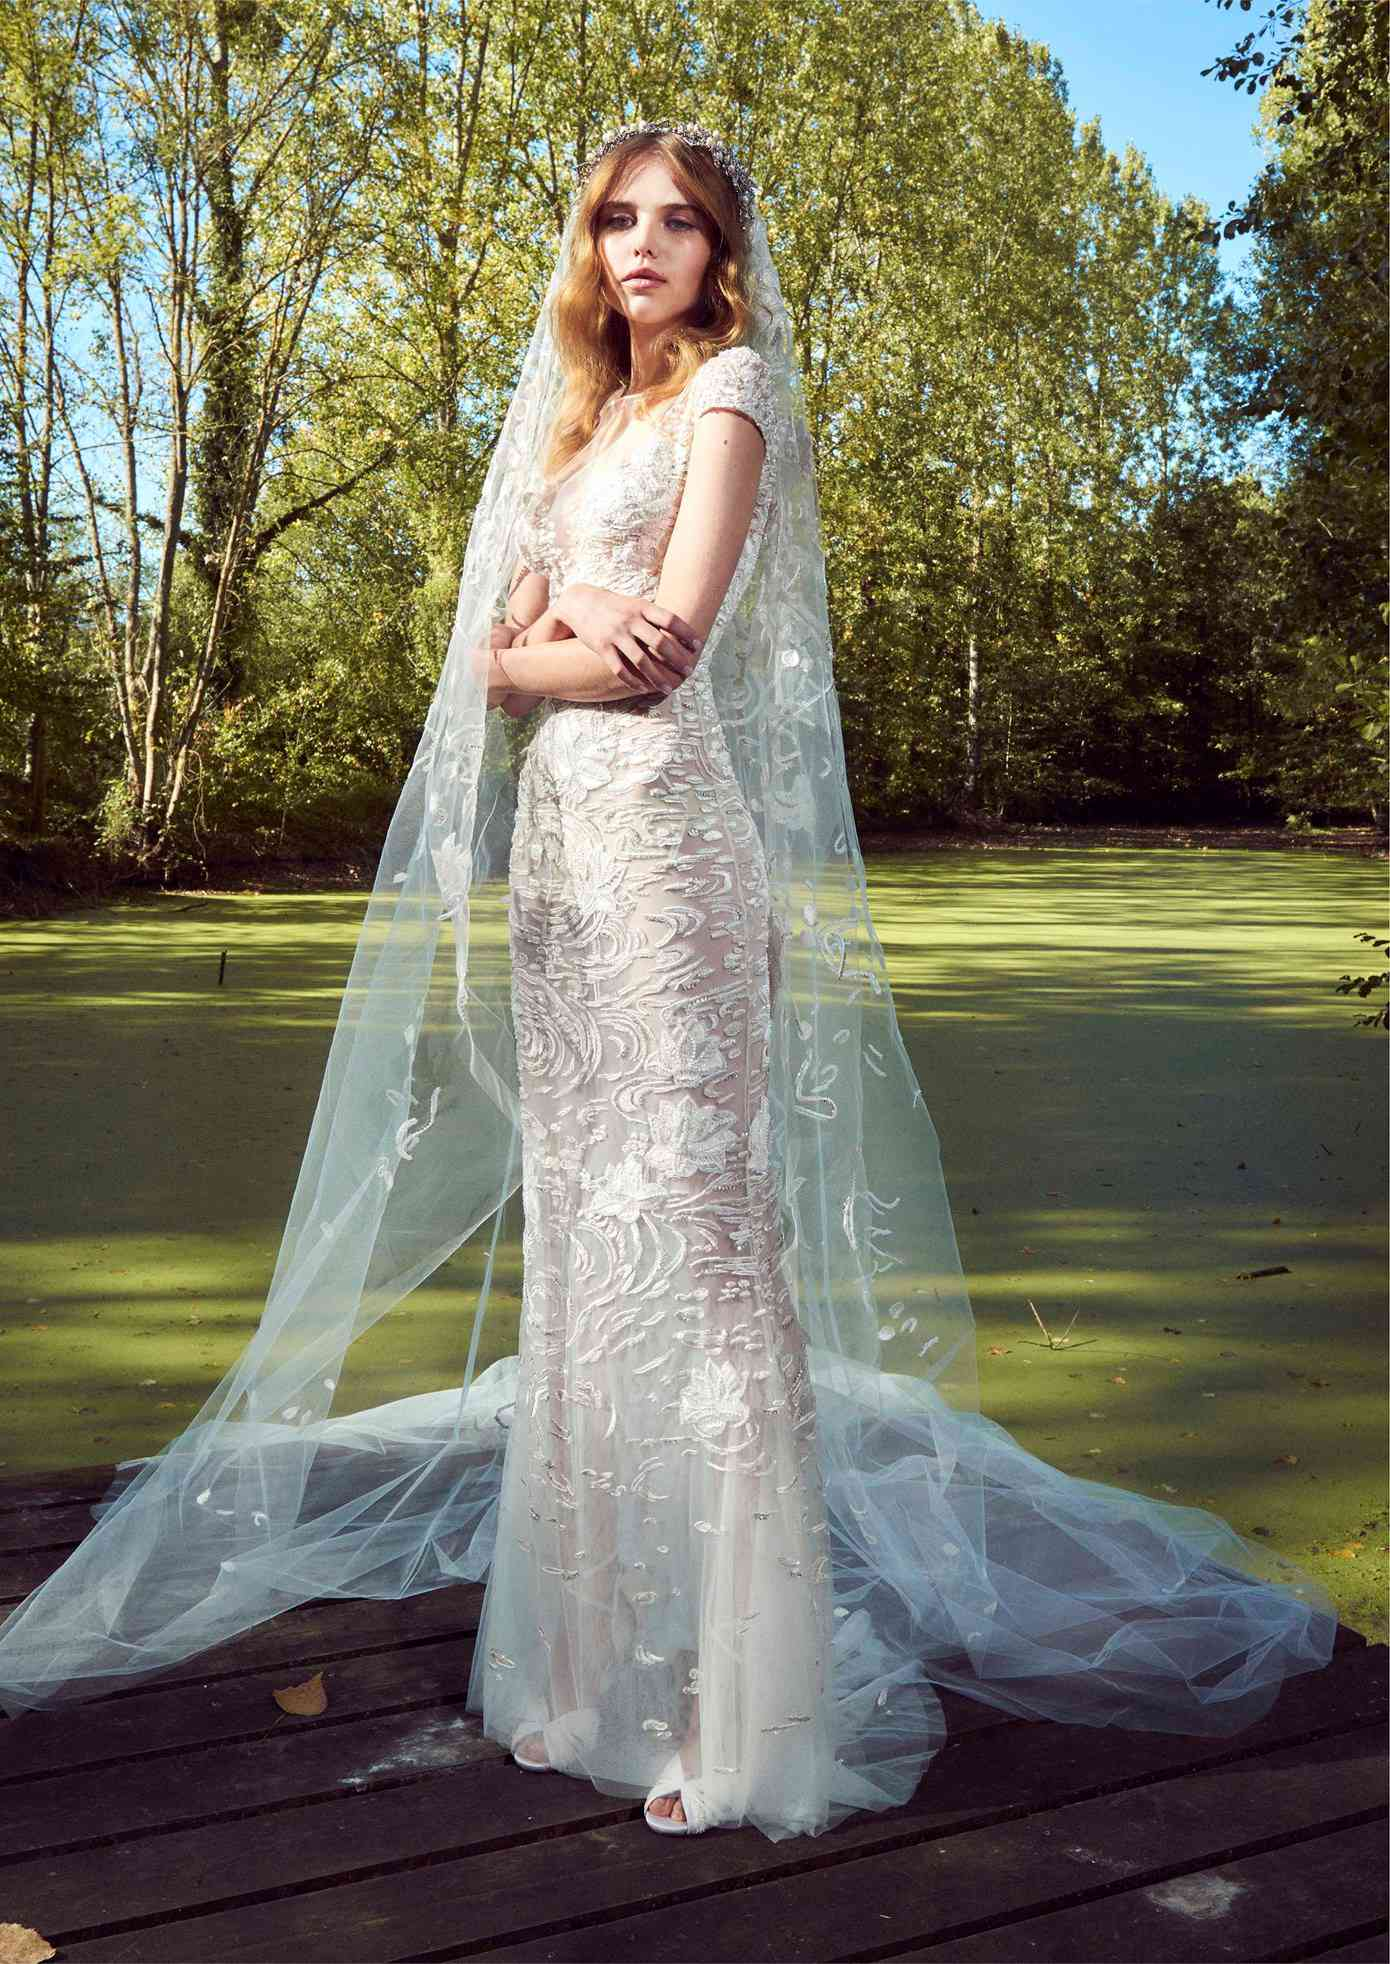 Model in a tulle sheath gown with cap sleeves, an illusion neckline, 3D beaded embroidery, and a matching veil